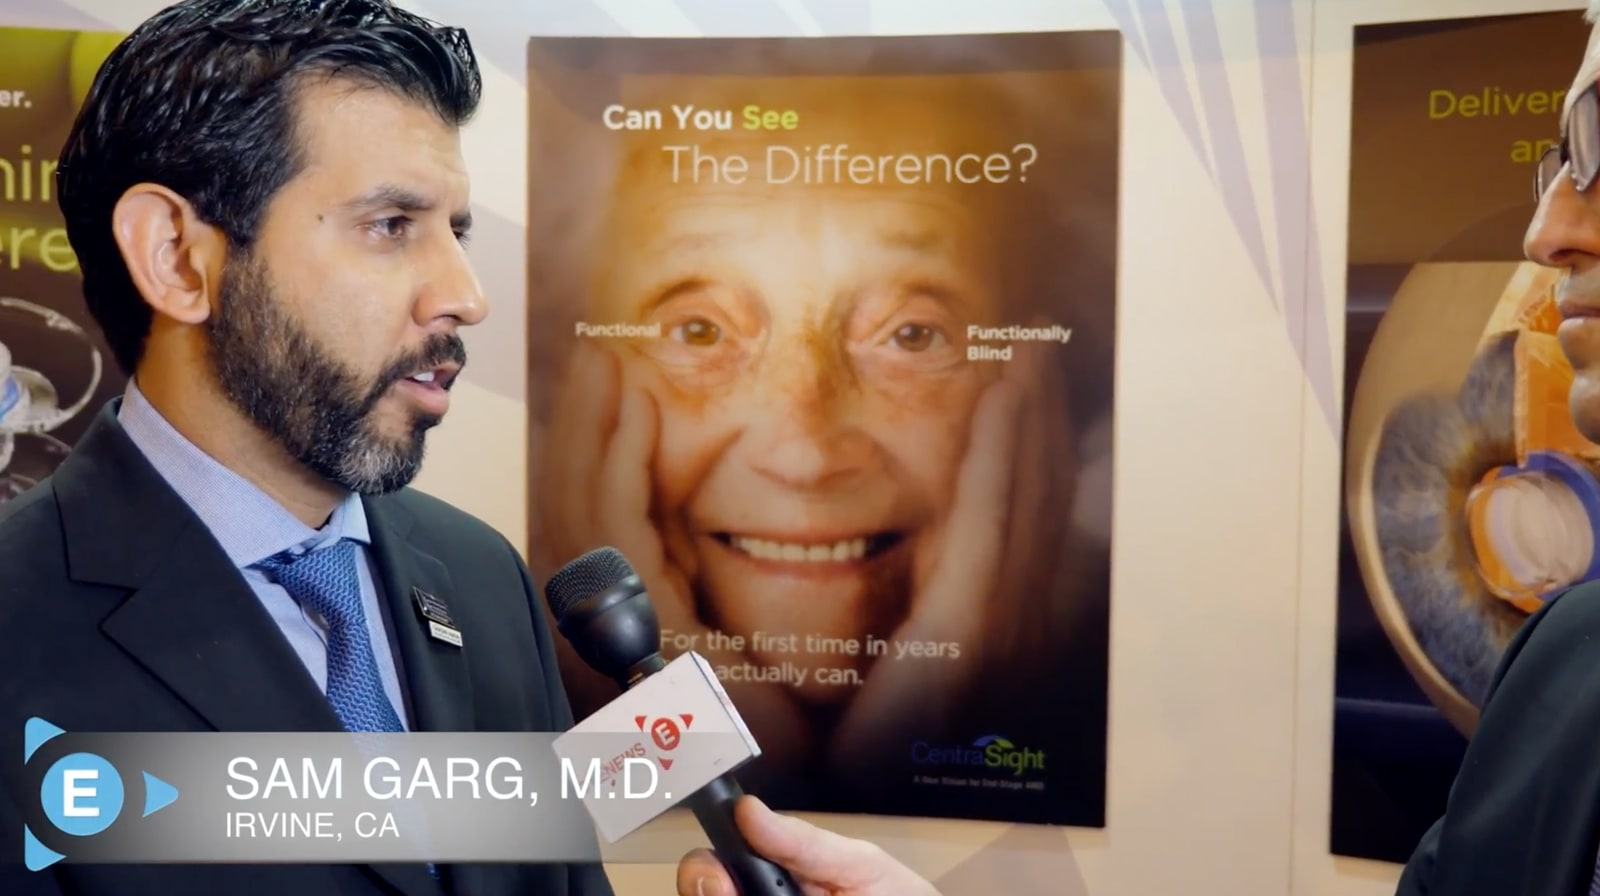 Dr. Sam Garg, M.D., on How to Identify Your Patient